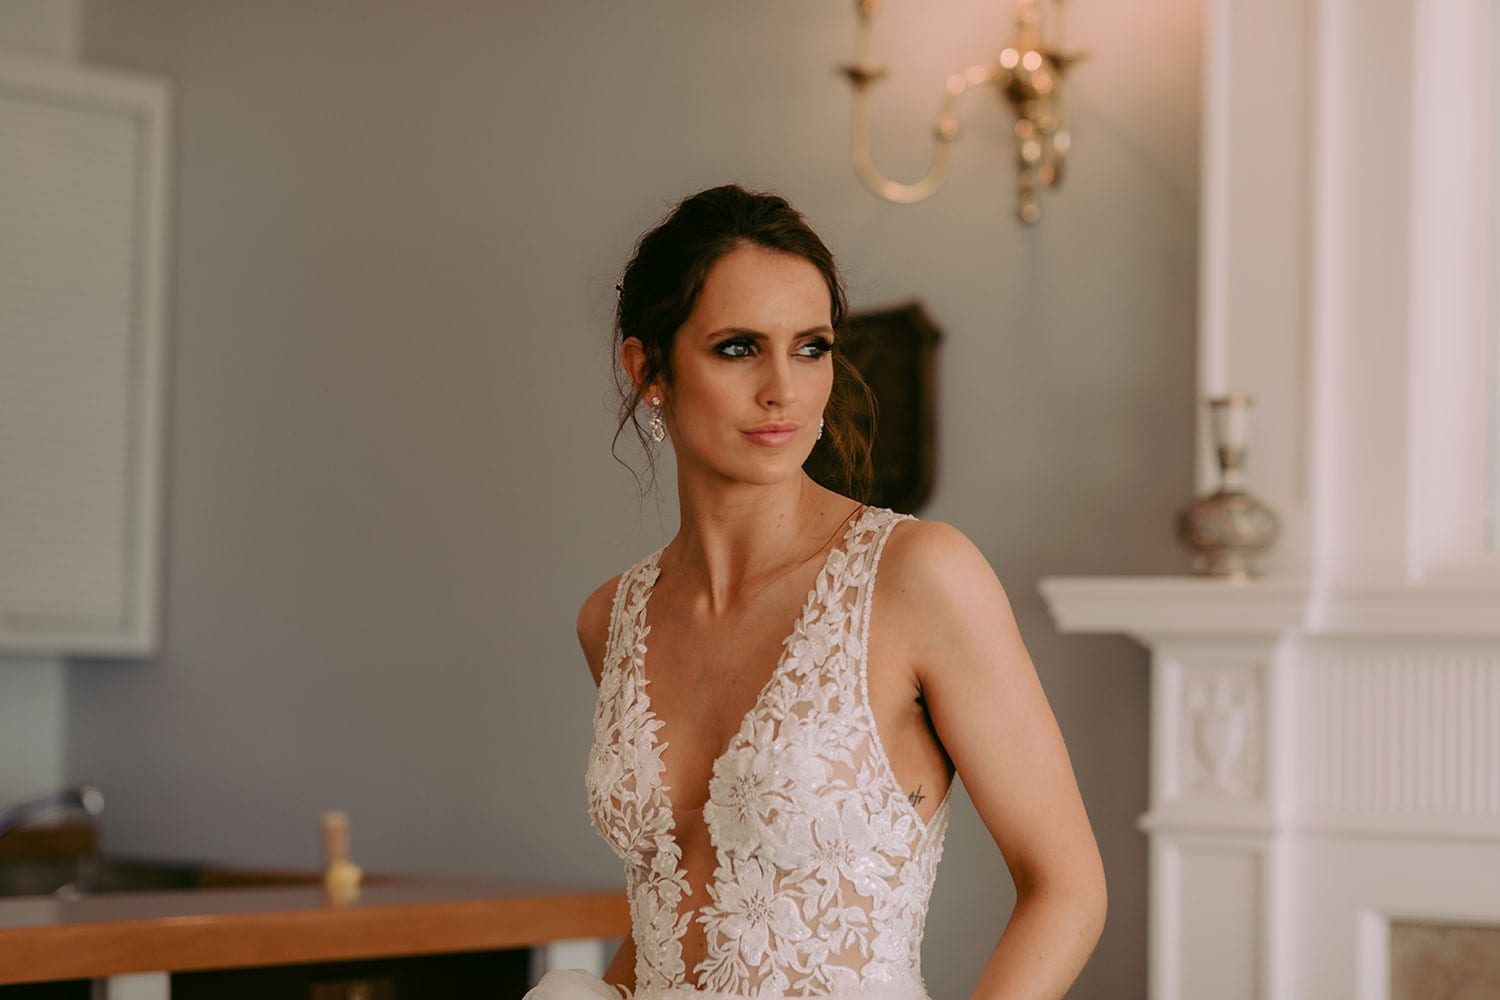 Tia Wedding gown from Vinka Design - This dreamy sculpted wedding dress has a deep V-shaped illusion neckline with beaded floral lace and an open back. The skirt has layers of soft tulle that glide with movement. Model wearing gown showing lace detail of bodice, straps, and V-neckline, inside warmly lit heritage room.